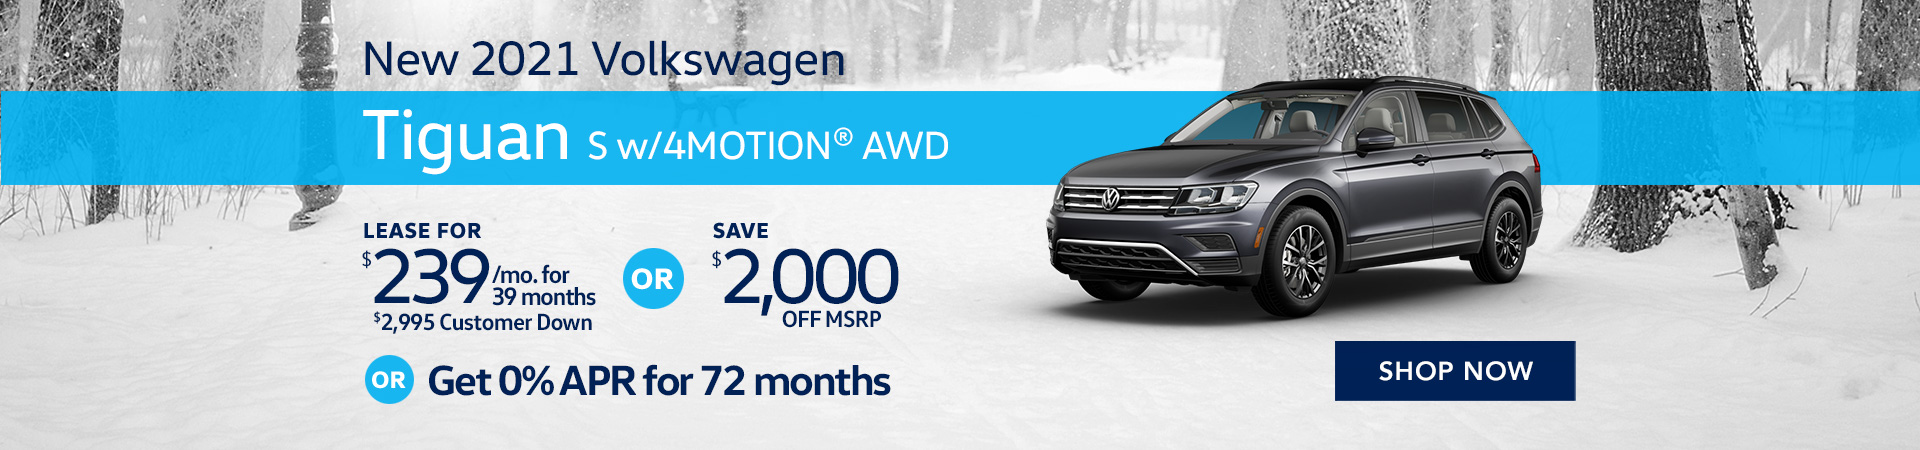 BVW_1920x450_New 2021 Volkswagen Tiguan S with 4MOTION® AWD_03_21